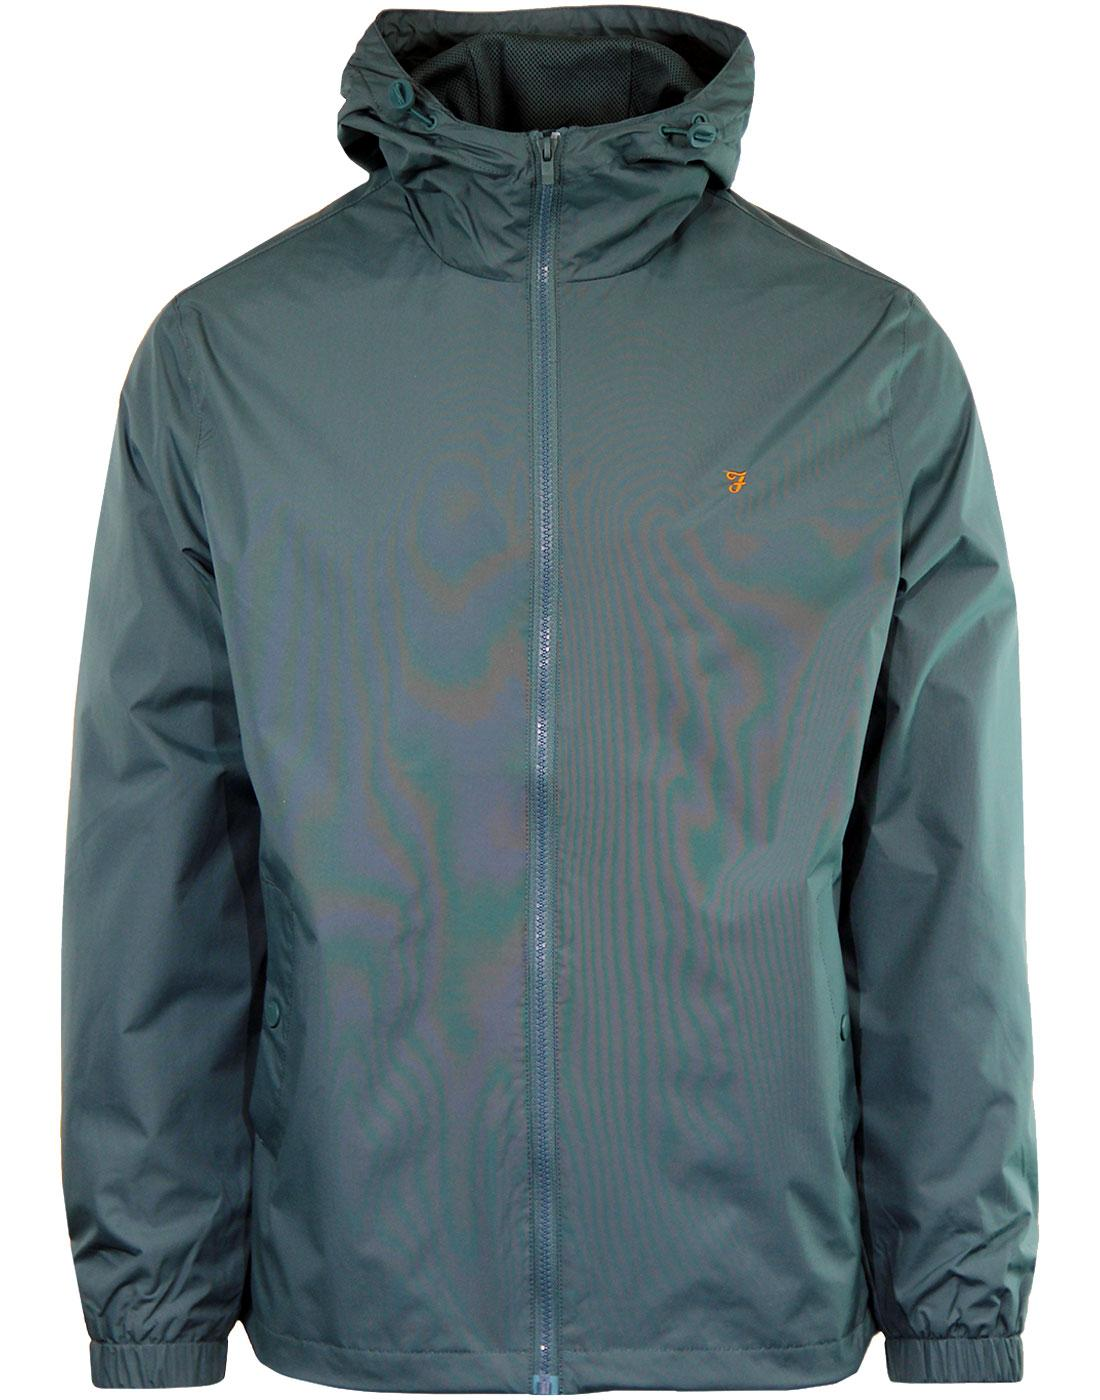 Smith FARAH Hooded Zip-up Hooded Anorak Jacket SG